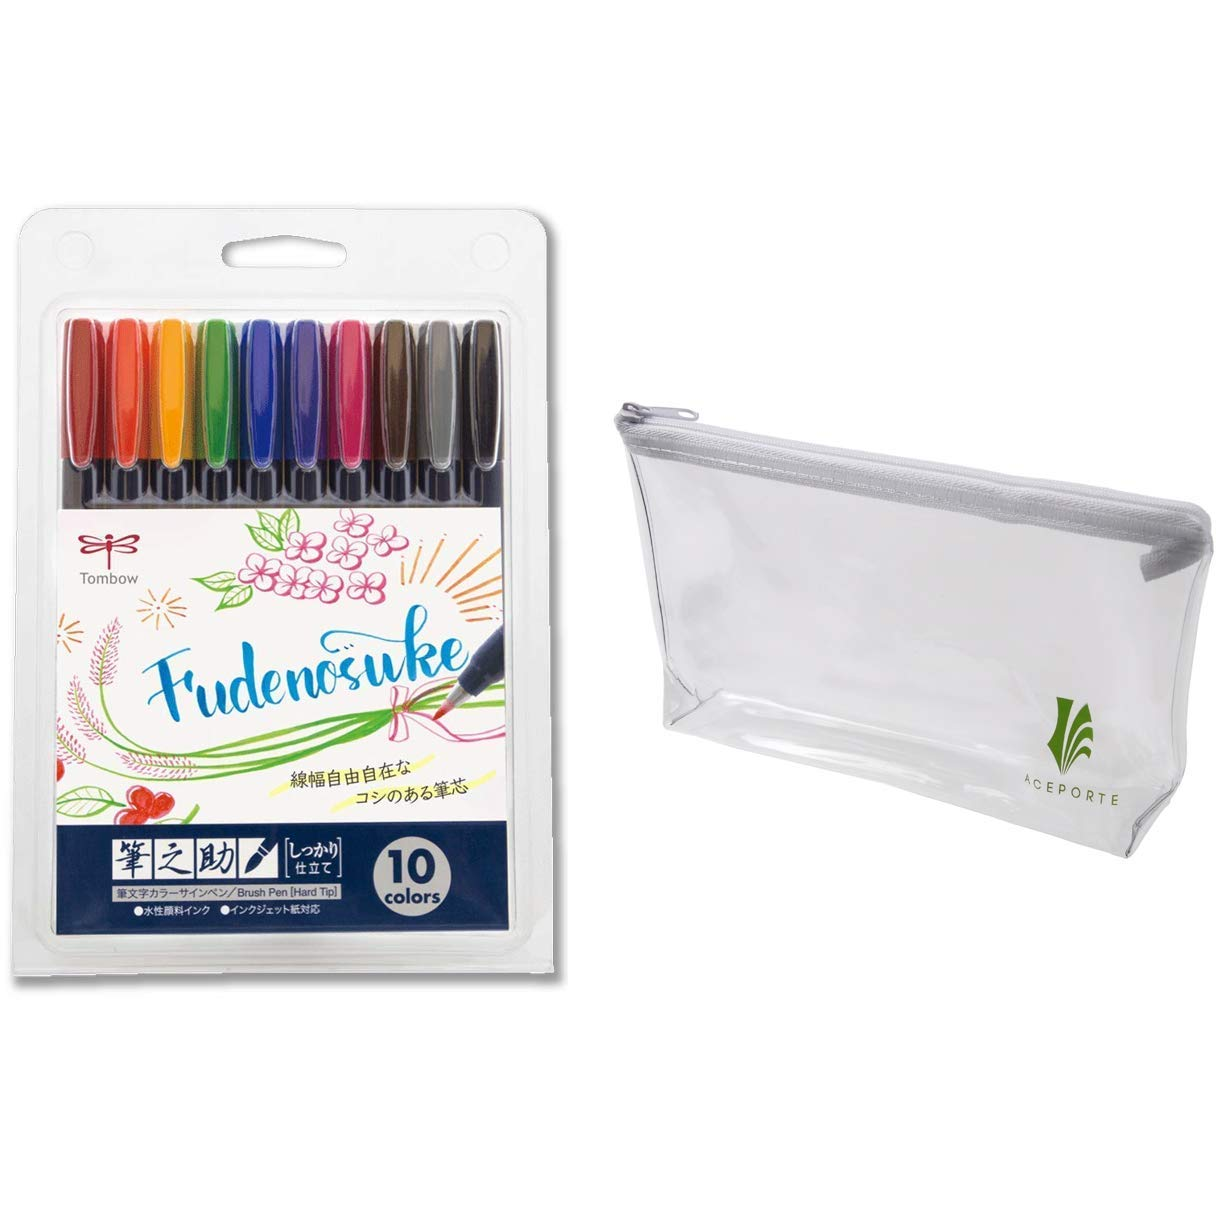 Tombow Fudenosuke Colors Set 10-Pack, WS-BH10C (Japanese Version) with Original Vinyl Pen case. Hard Tip Fudenosuke Brush Pens in Assorted Colors for Calligraphy and Art Drawings